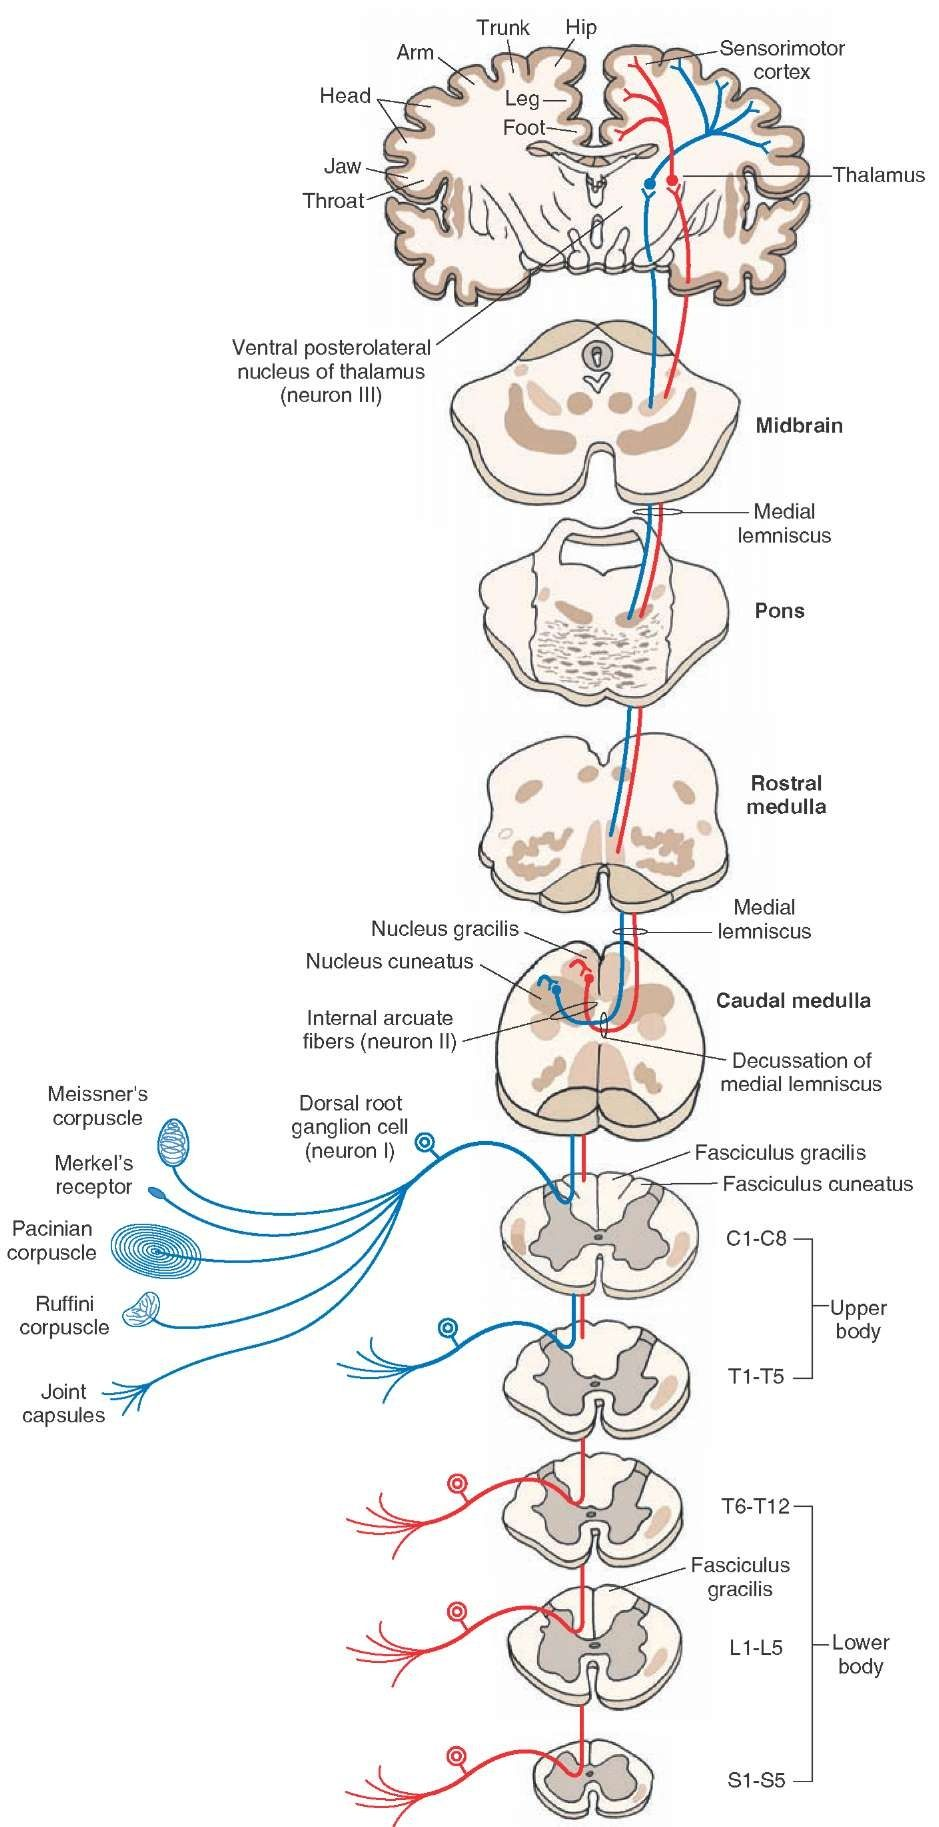 fasciculus cuneatus tract (tract of Burdach) | Cerebro | Pinterest ...